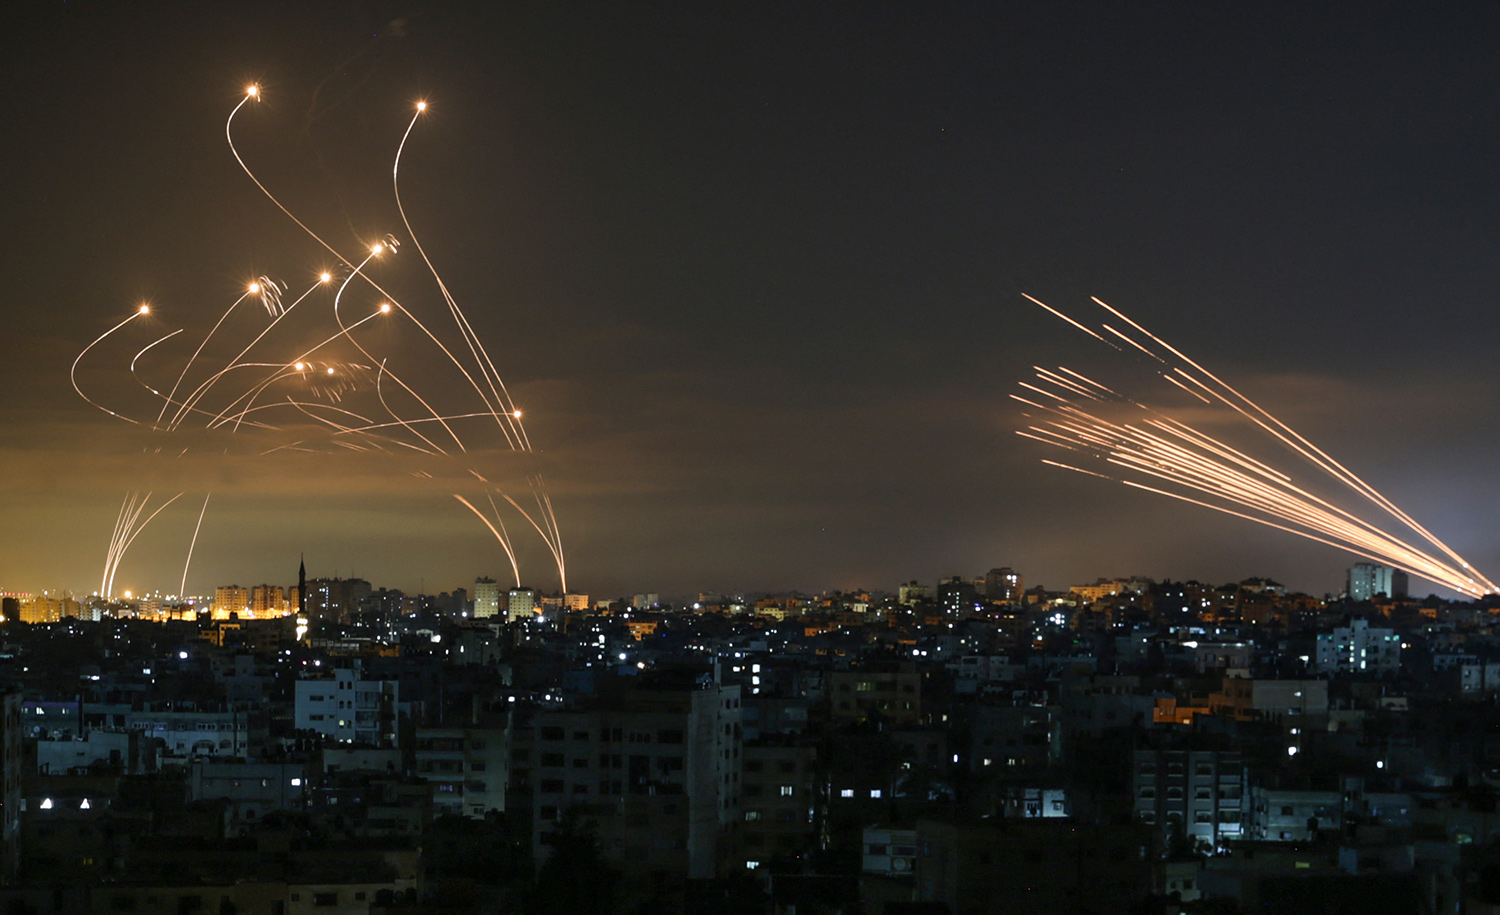 Streaks of light appear as Israel's Iron Dome anti-missile system intercepts rockets launched from the Gaza Strip on May 16, 2021. ANAS BABA/AFP via Getty Images.